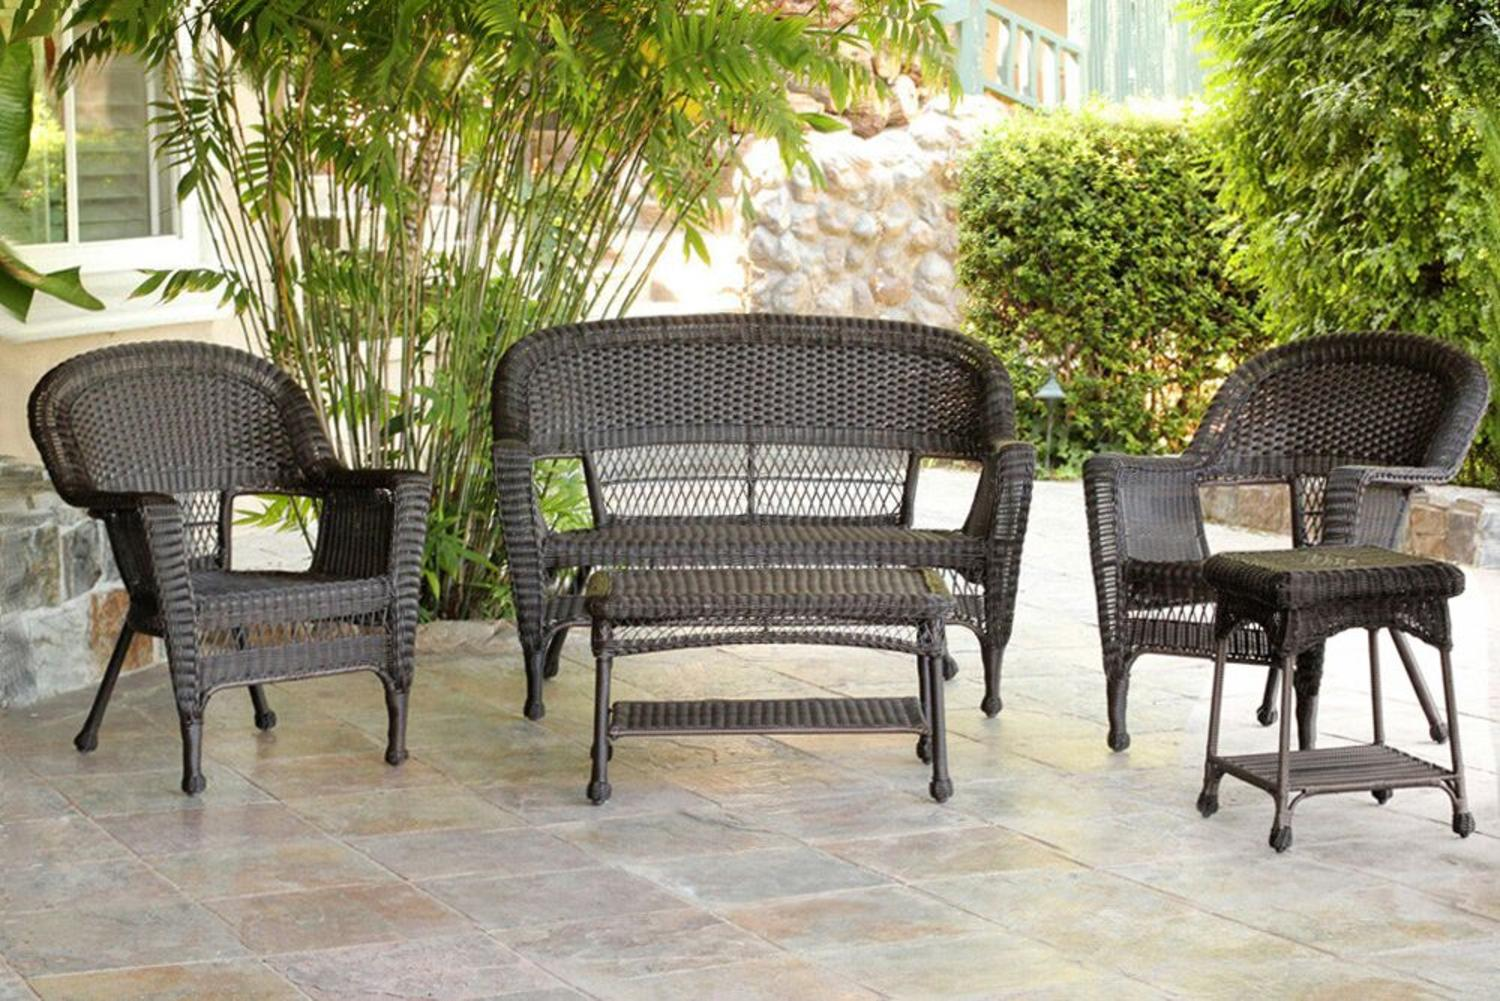 resin wicker patio furniture sets 5-Piece Espresso Resin Wicker Patio Chairs, Loveseat and